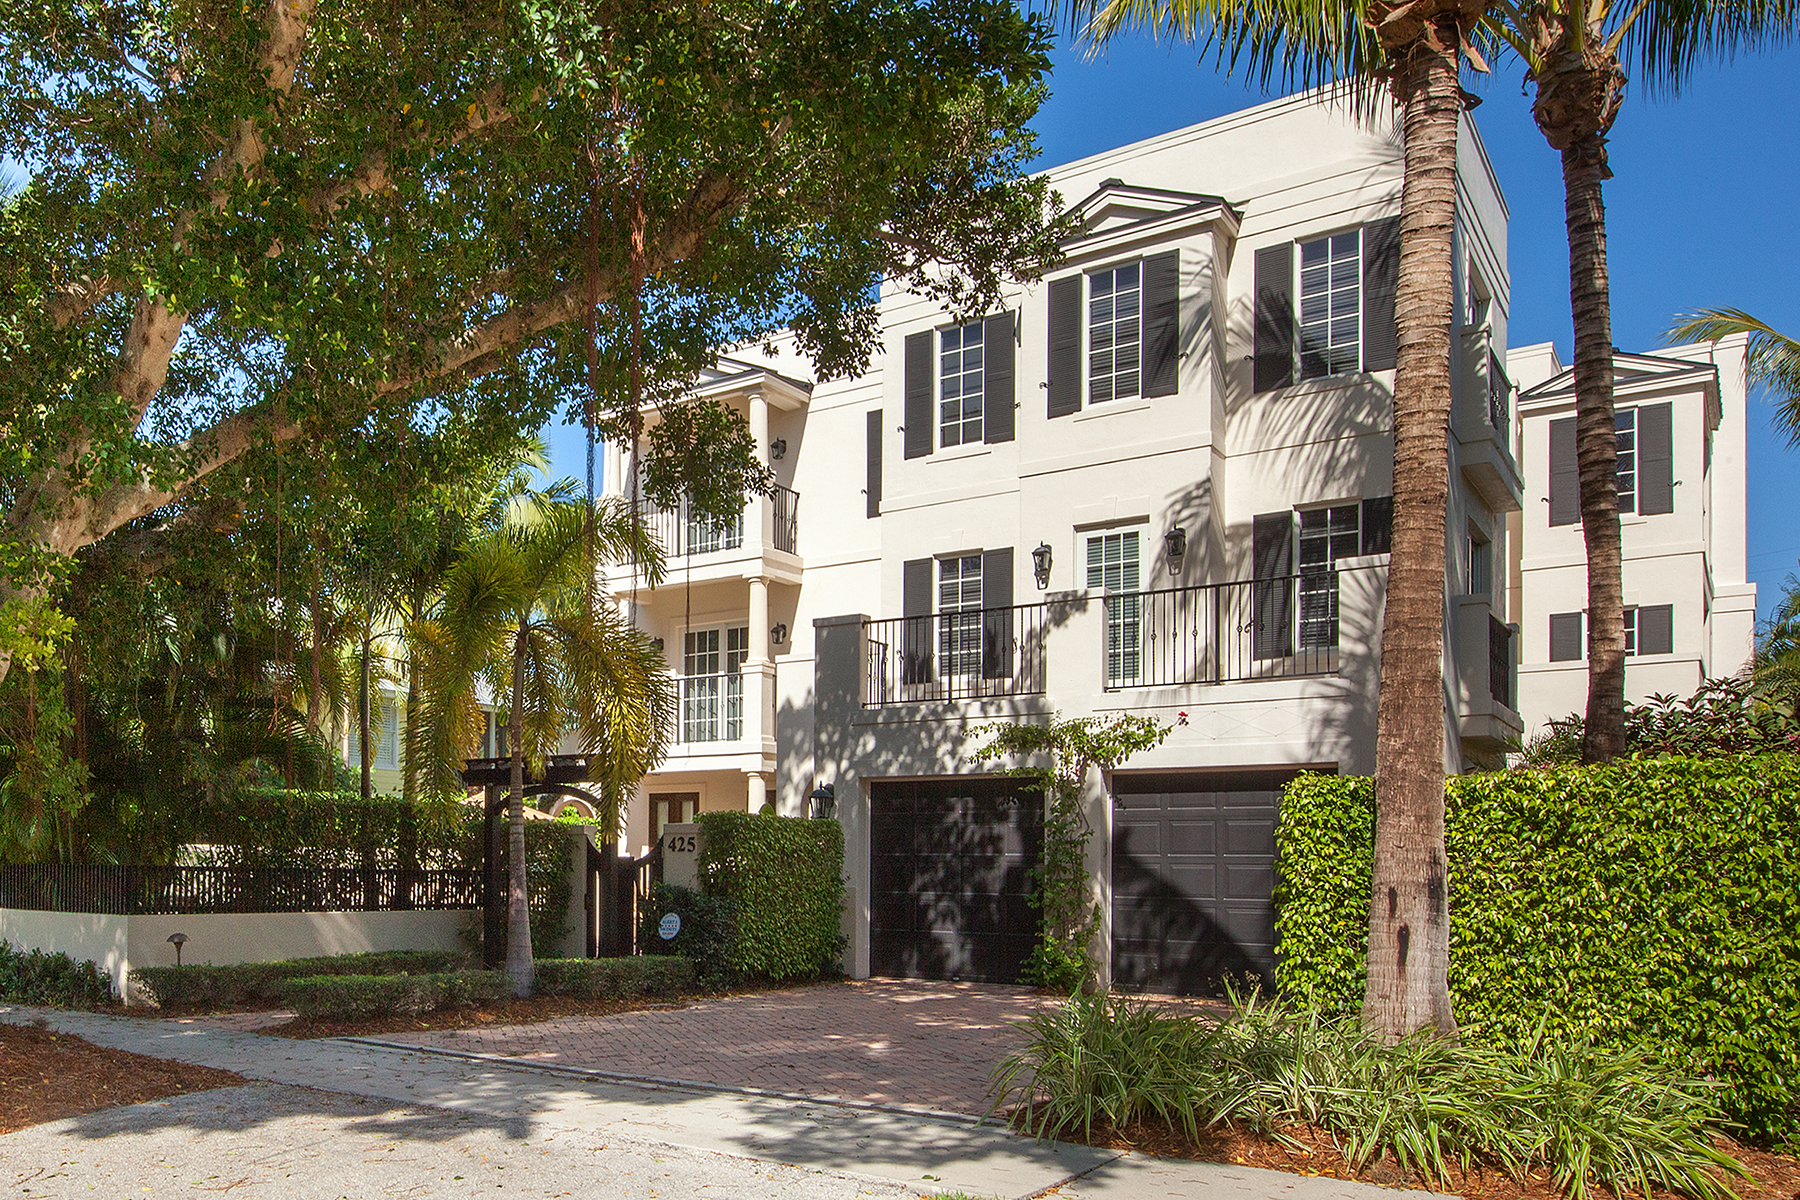 Townhouse for Sale at OLD NAPLES - ORCHID PLACE 425 3rd Ave S 2, Naples, Florida 34102 United States